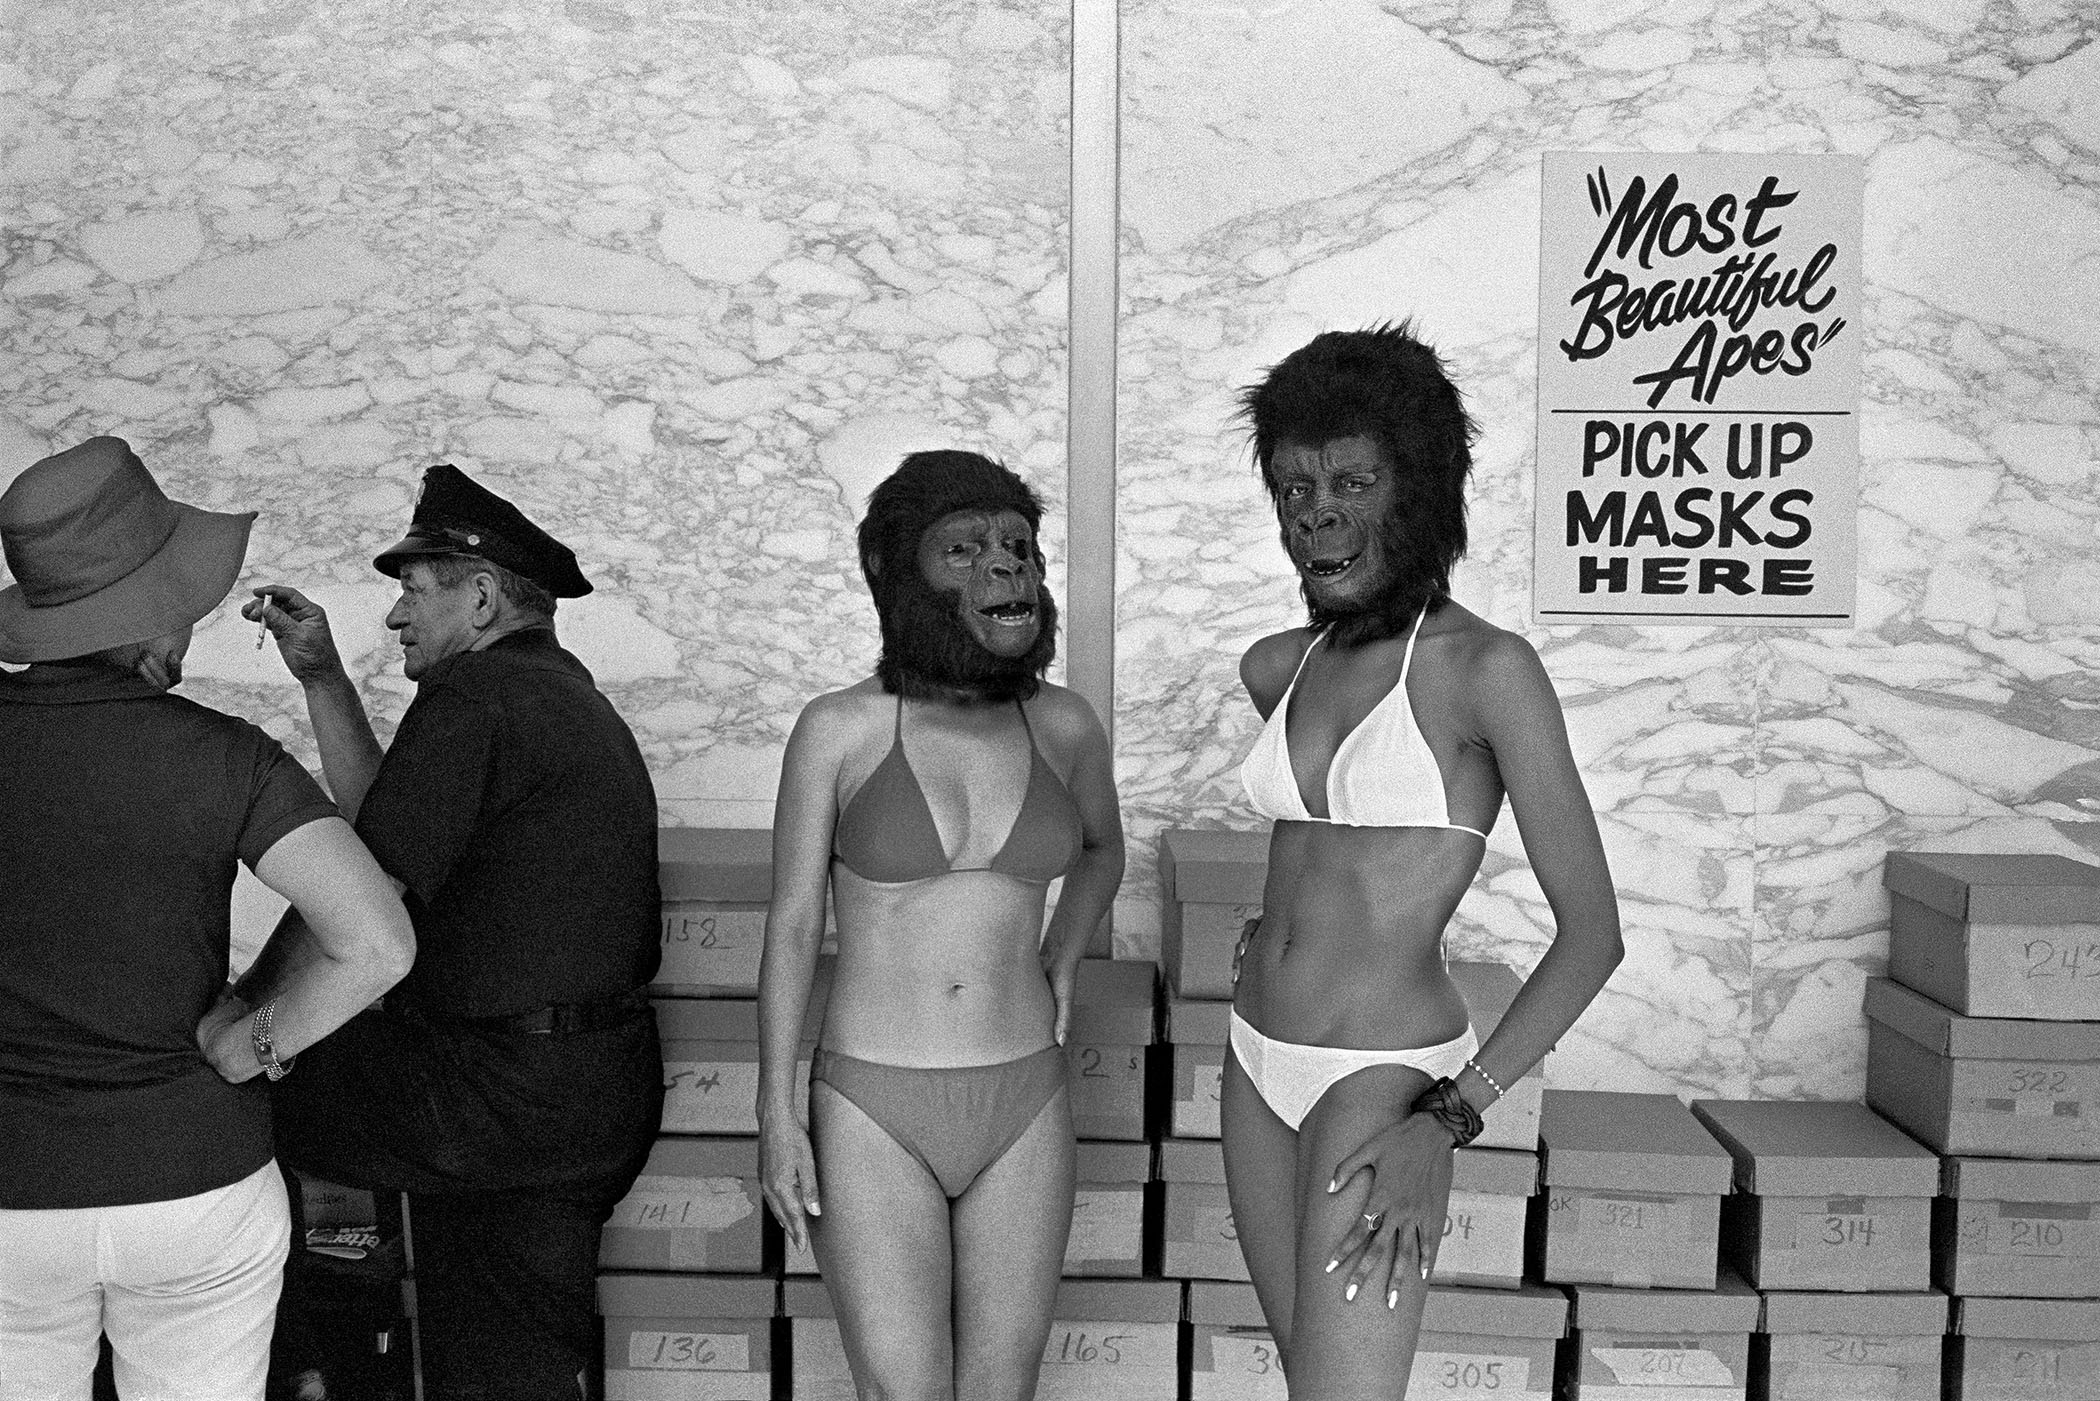 PLANET OF THE APES BEAUTY CONTEST, CENTURY CITY, 1973 © Michael Jang